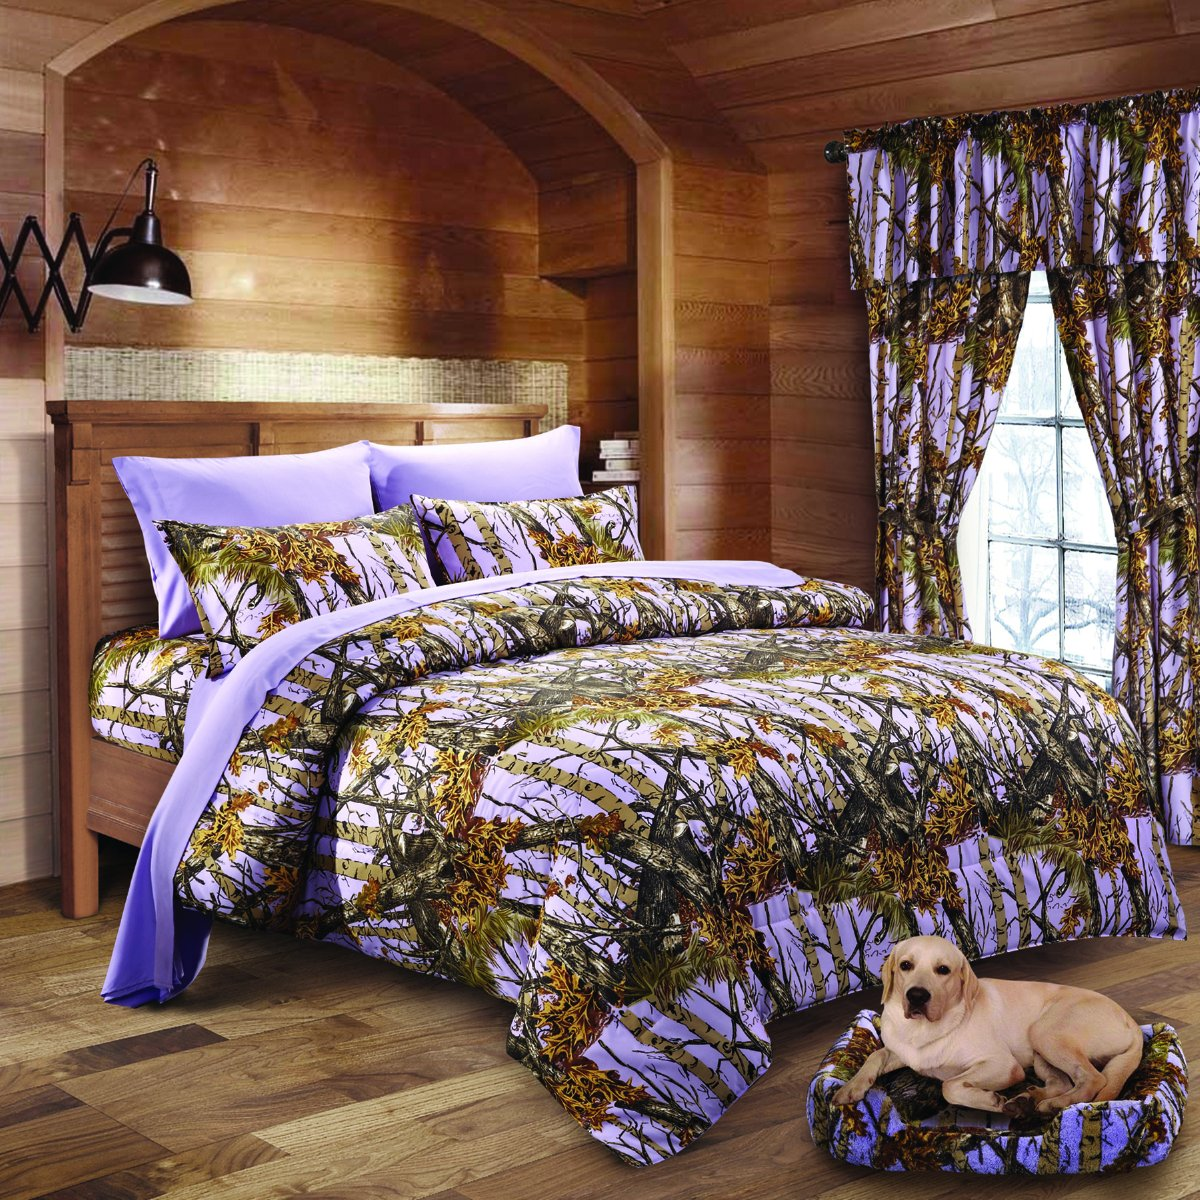 20 Lakes Woodland Hunter Camo Comforter